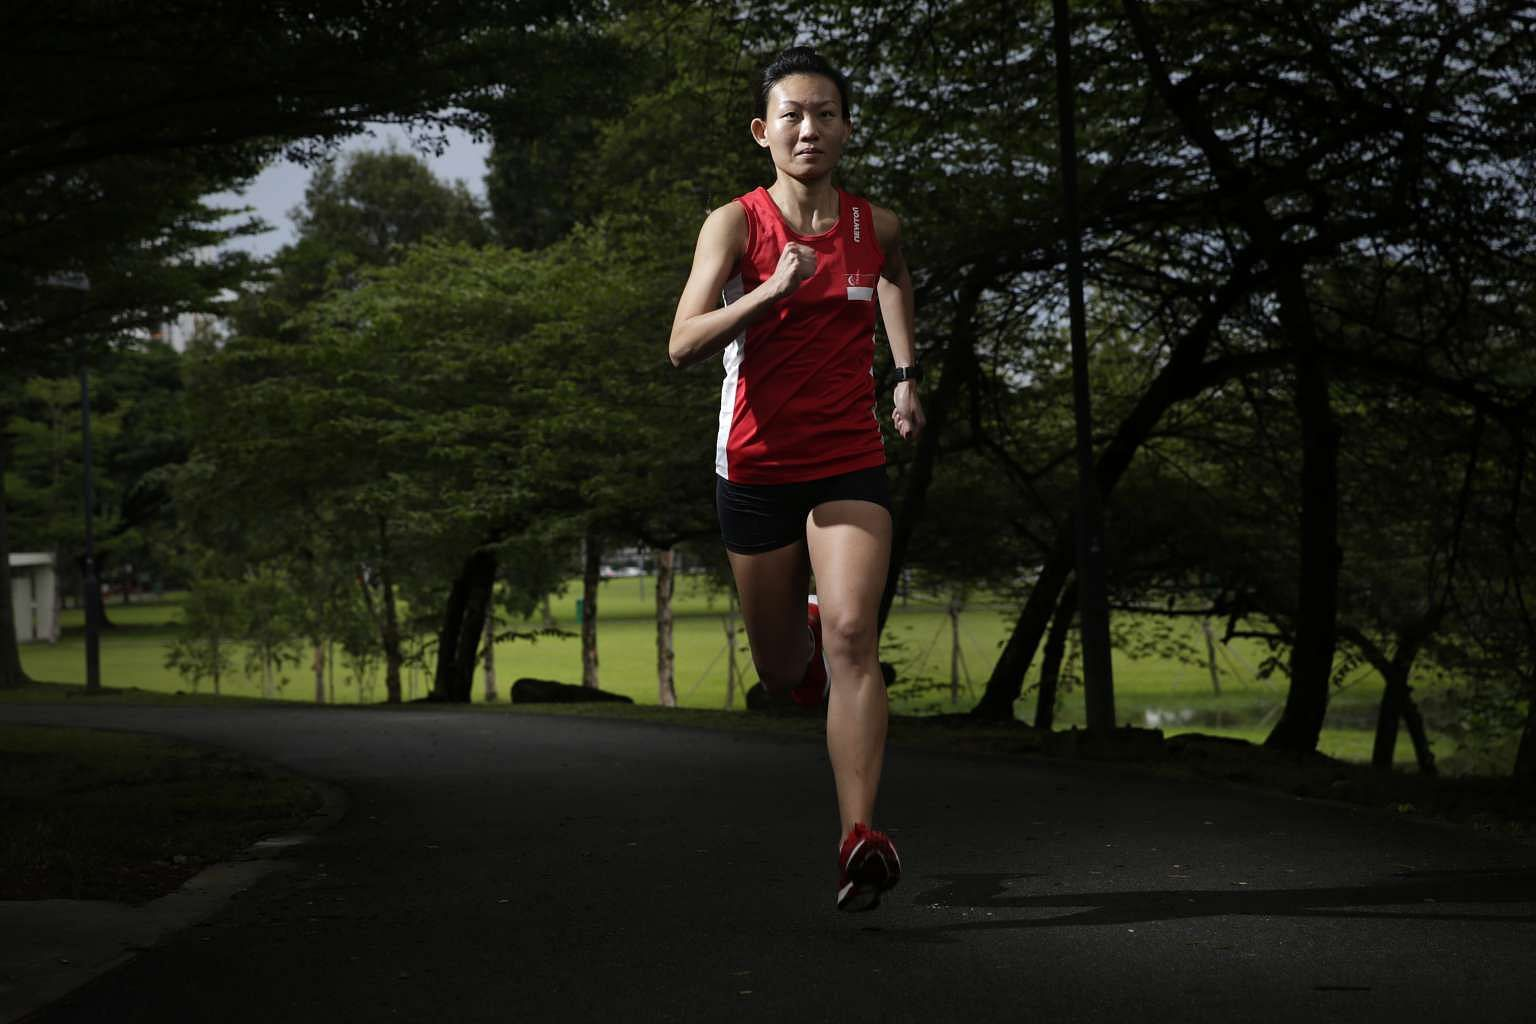 Neo Jie Shi, a marathoner for the Olympic Games, runs in a park near Jurong SAFRA where she trains. She is the first female marathoner since Yvonne Danson at the 1996 Atlanta Games.